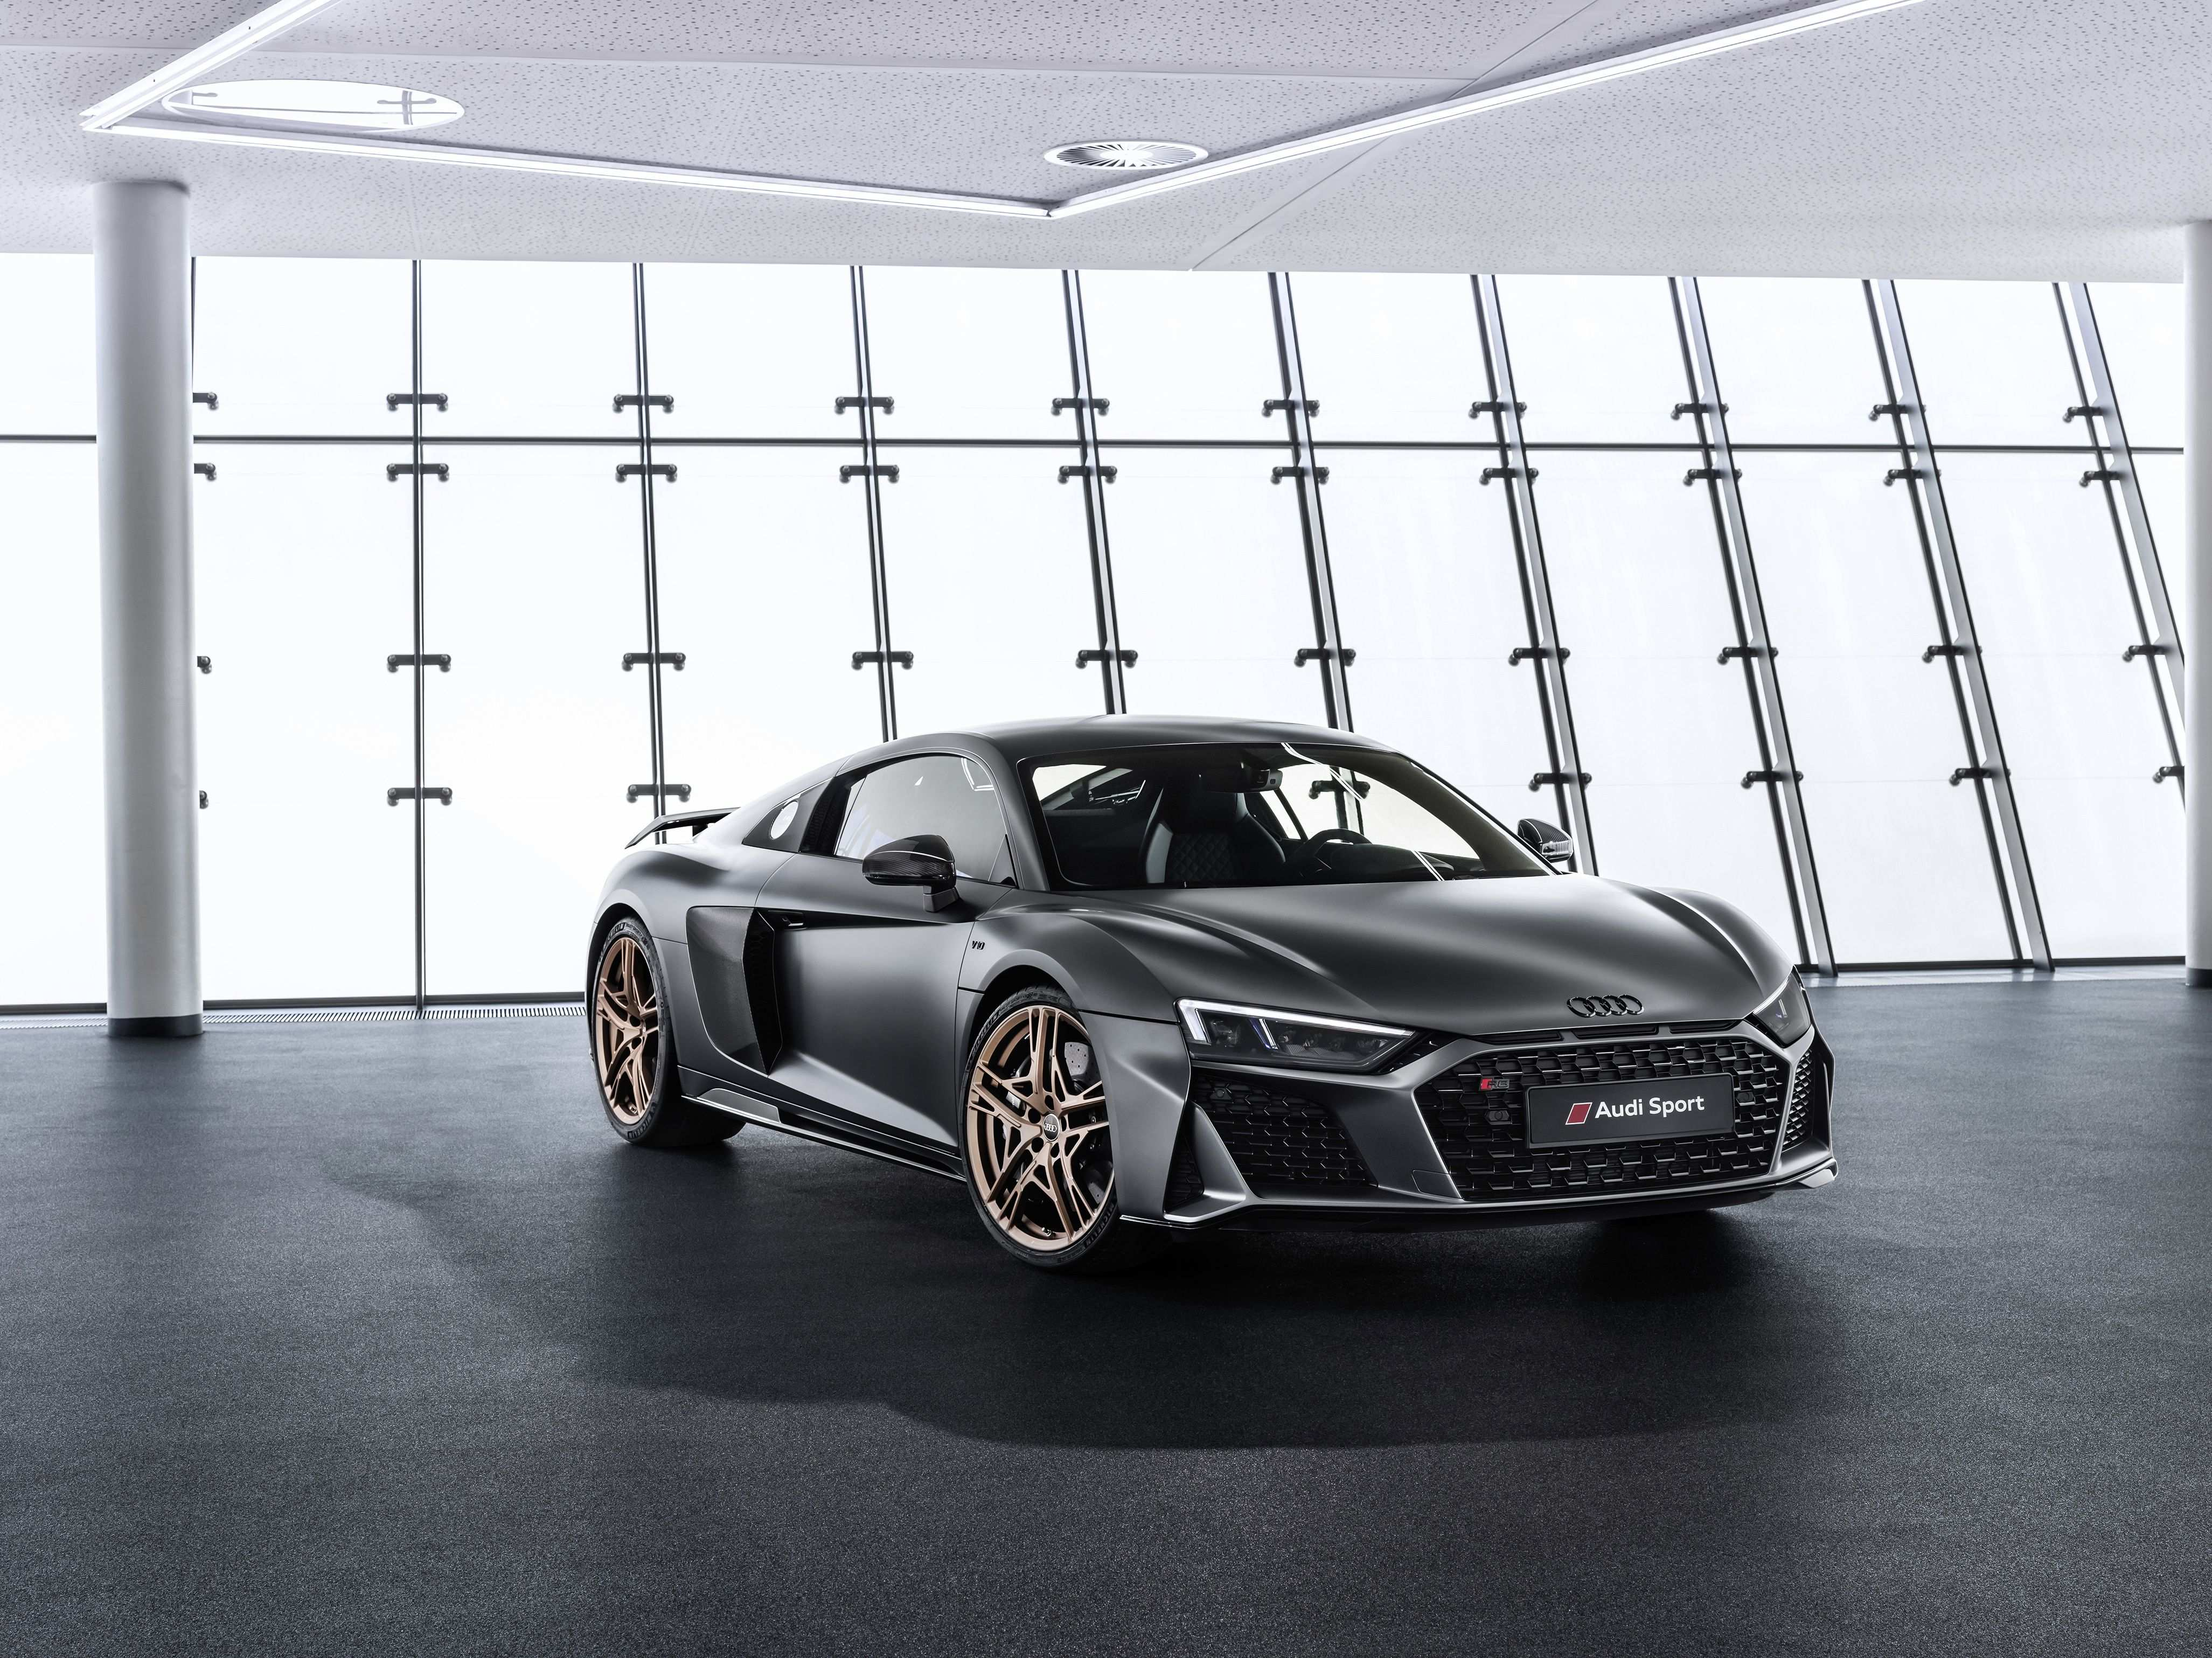 16 Gallery of 2020 Audi R8 For Sale Spesification for 2020 Audi R8 For Sale